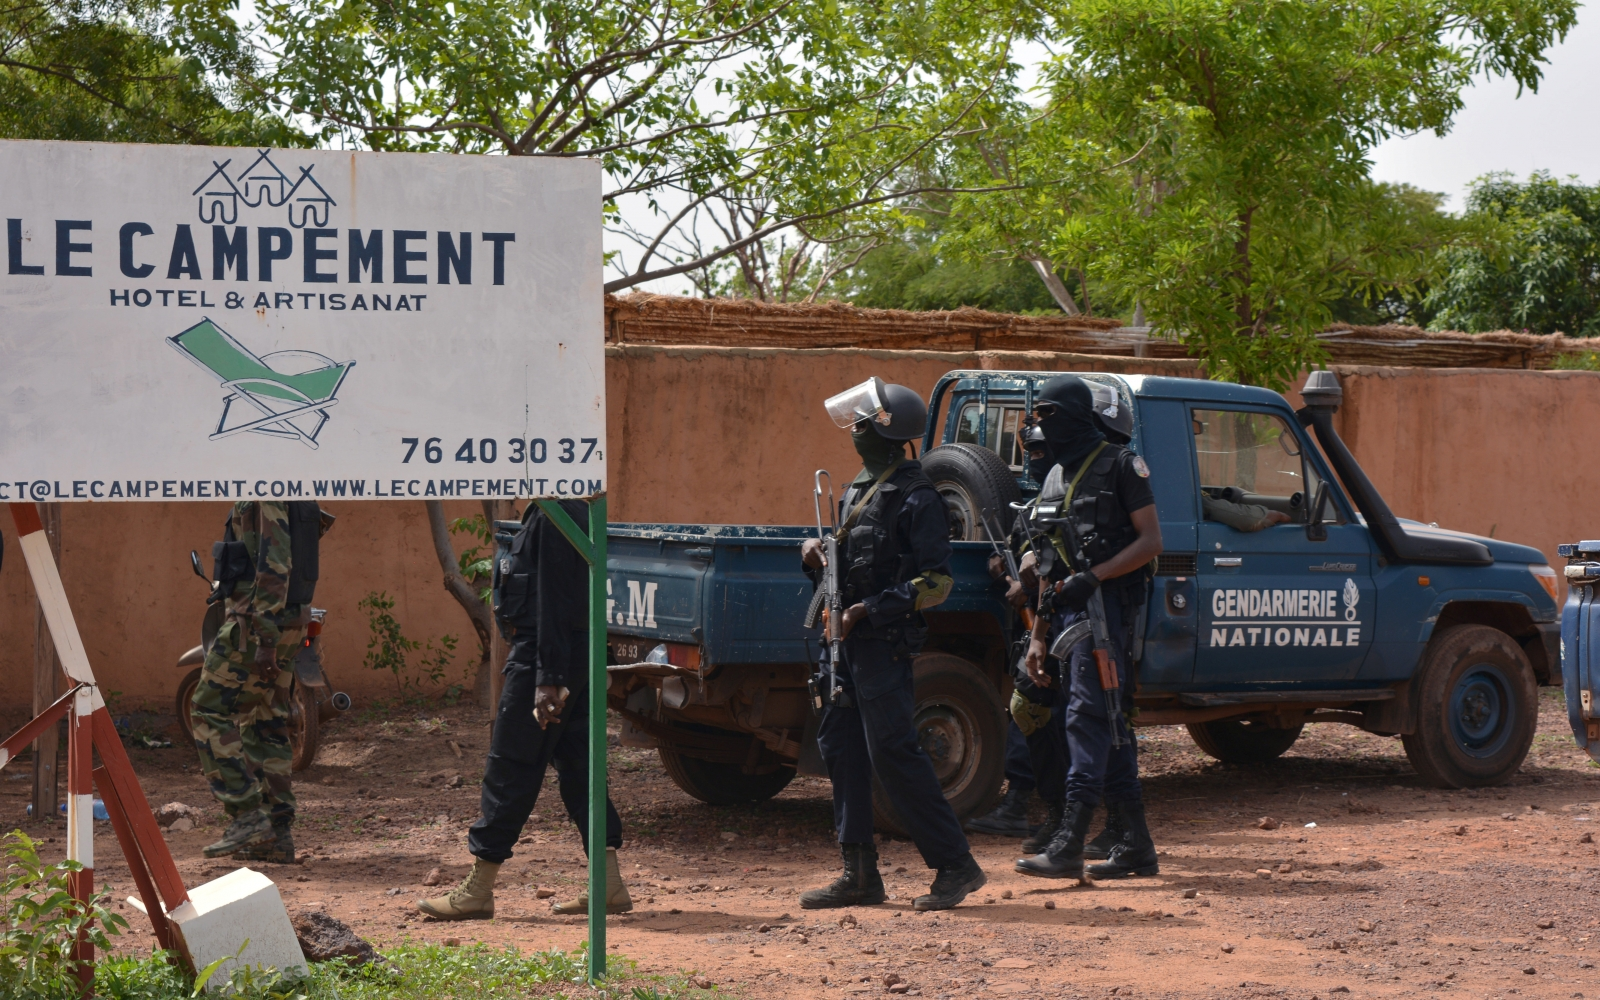 Two killed in terror attack at Mali tourist resort